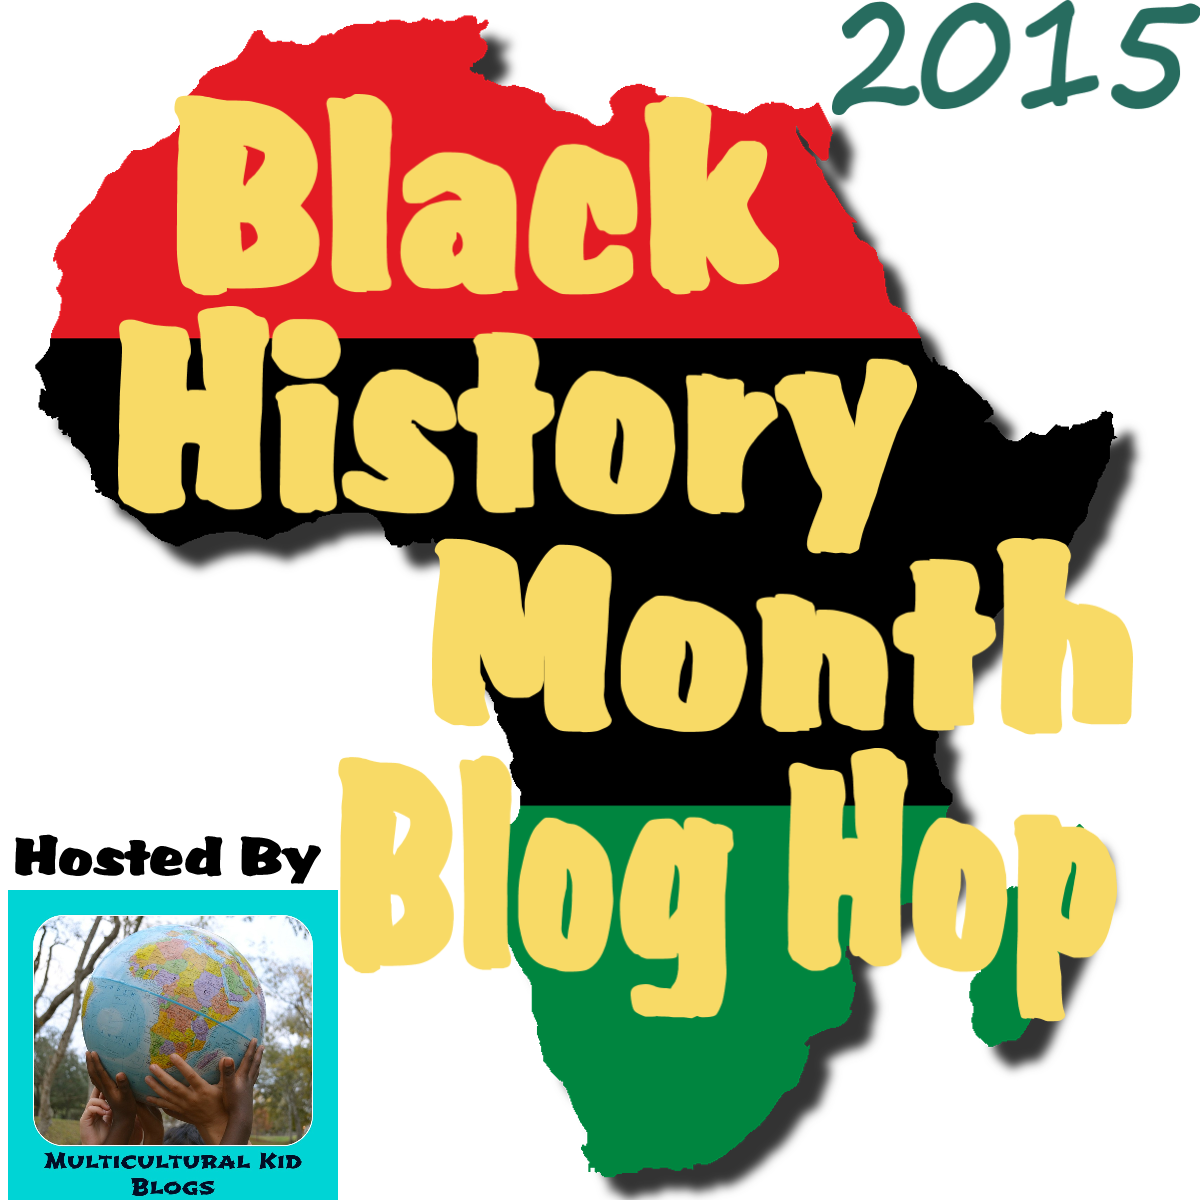 http://multiculturalkidblogs.com/black-history-month-2015/